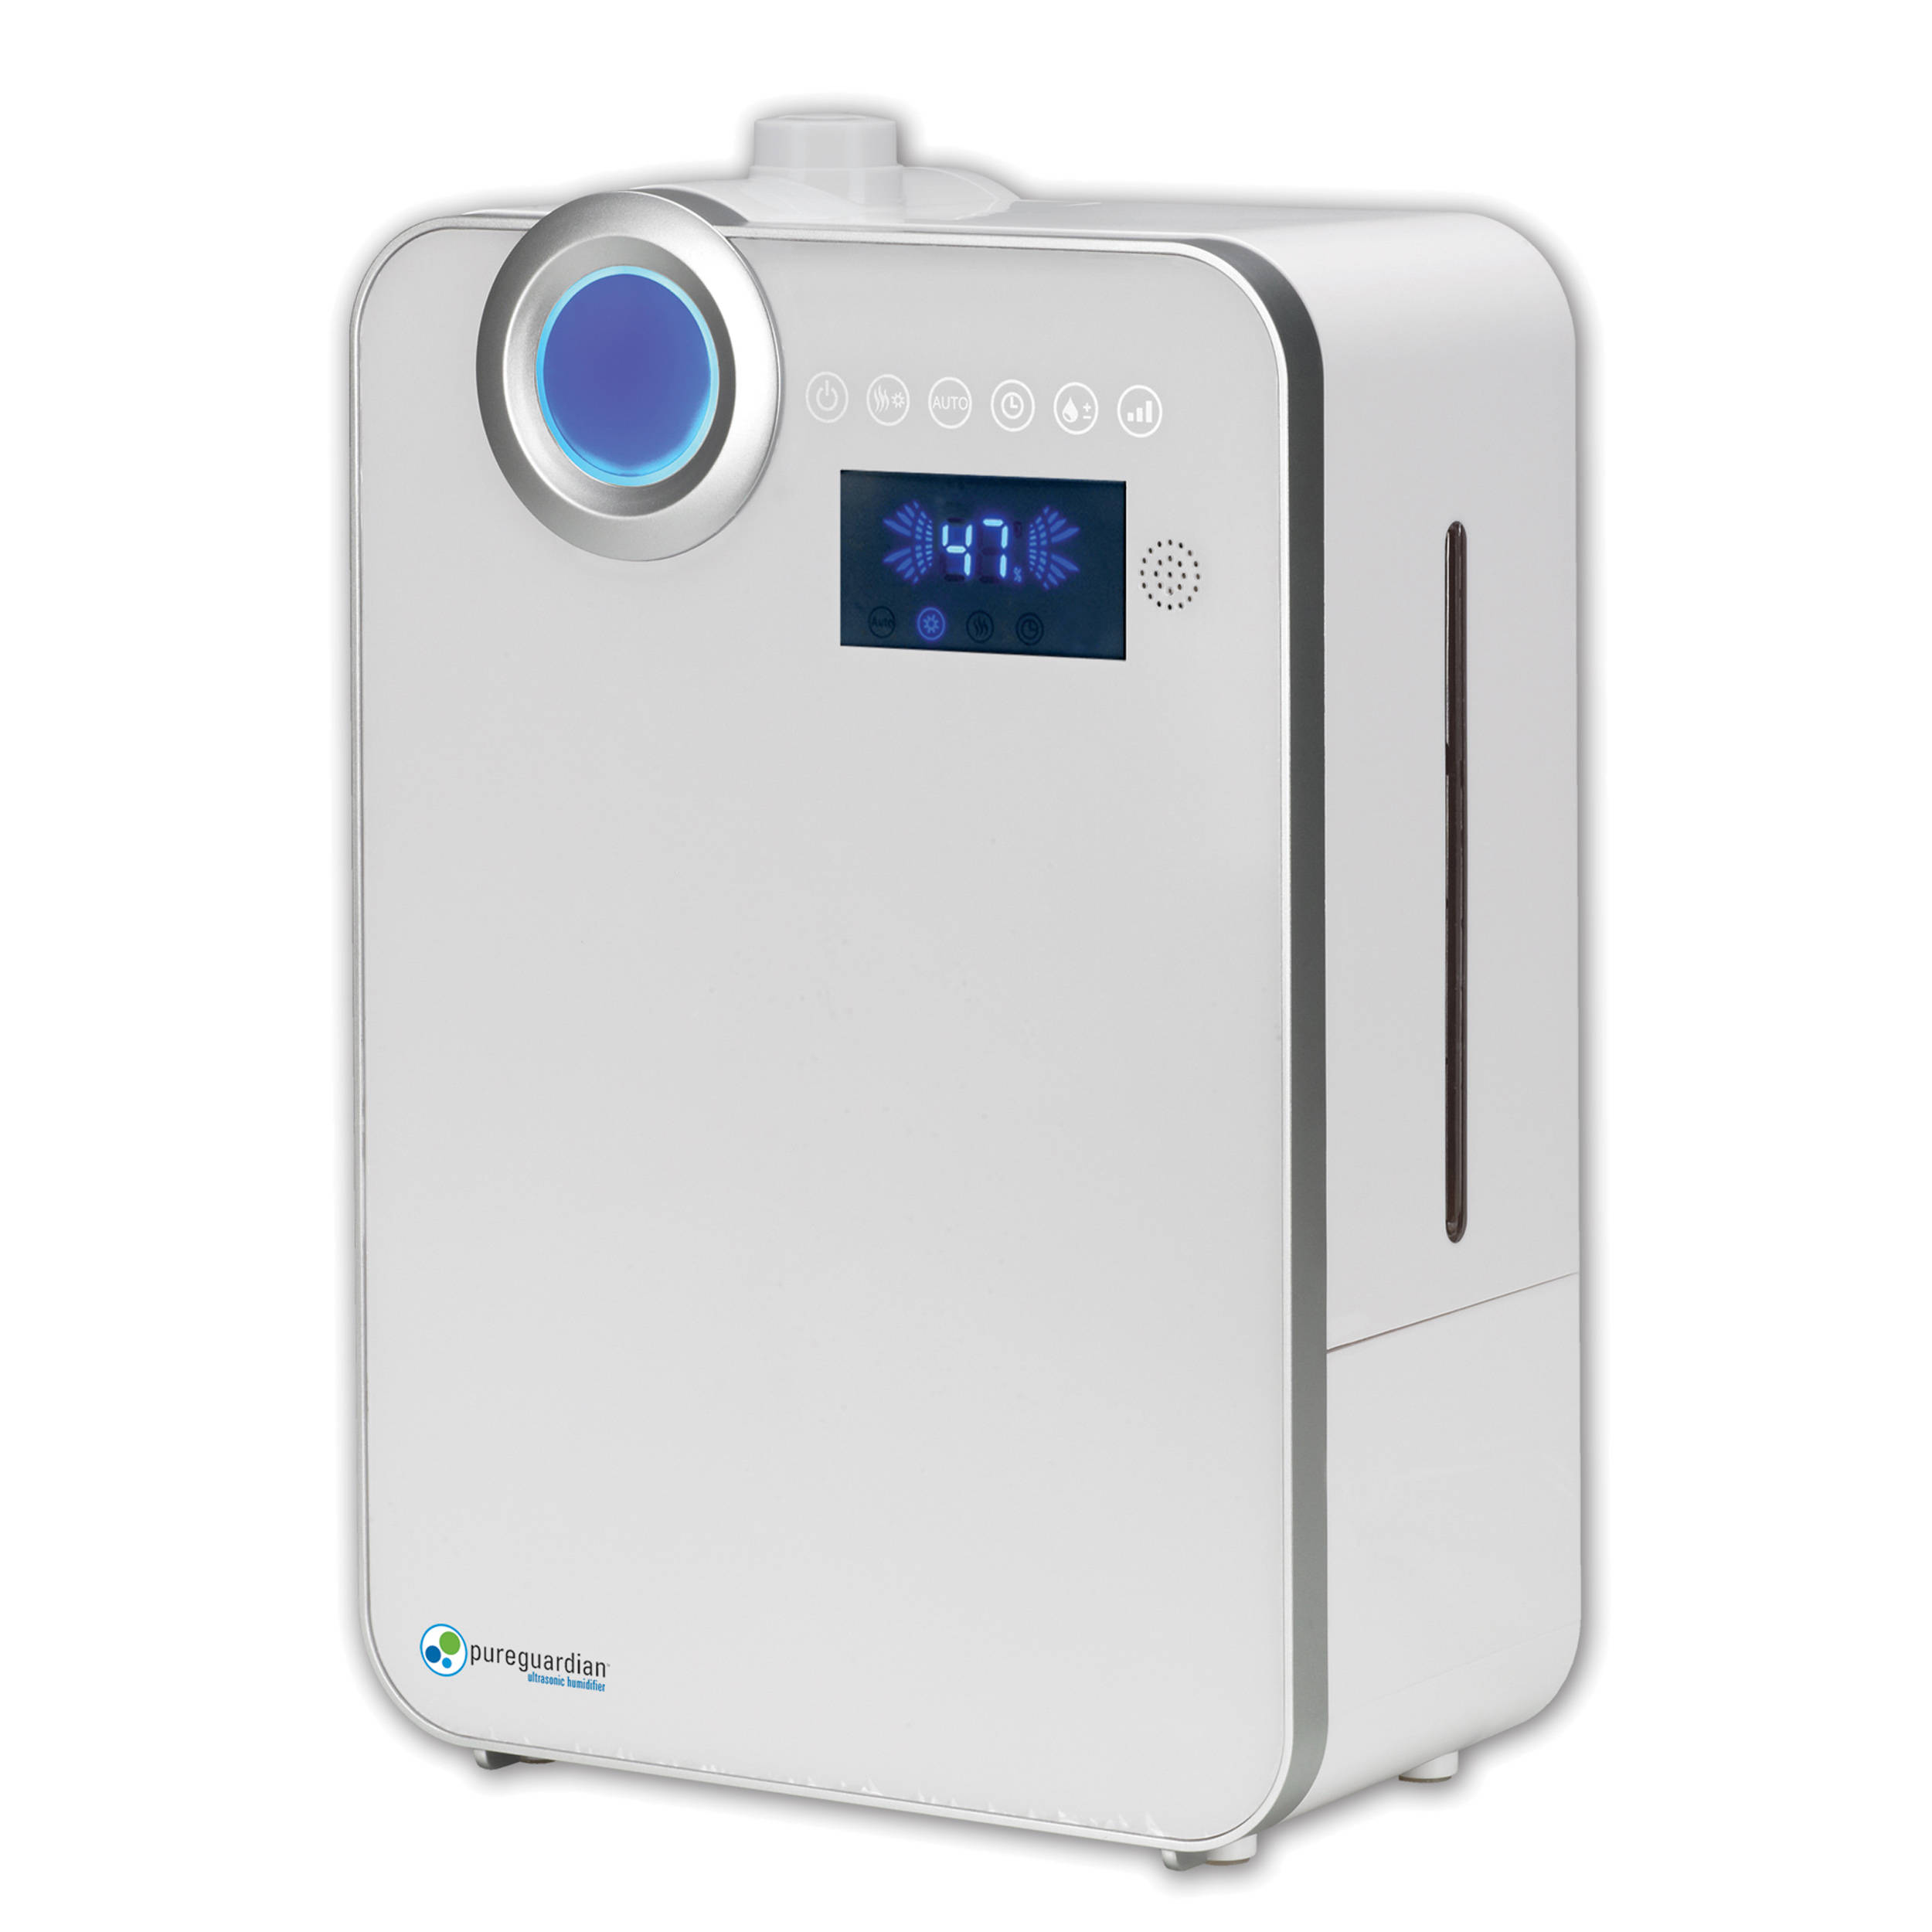 Ultrasonic Cool Mist Humidifier Table Top 1 Gallon Walmart.com #2C7D9F